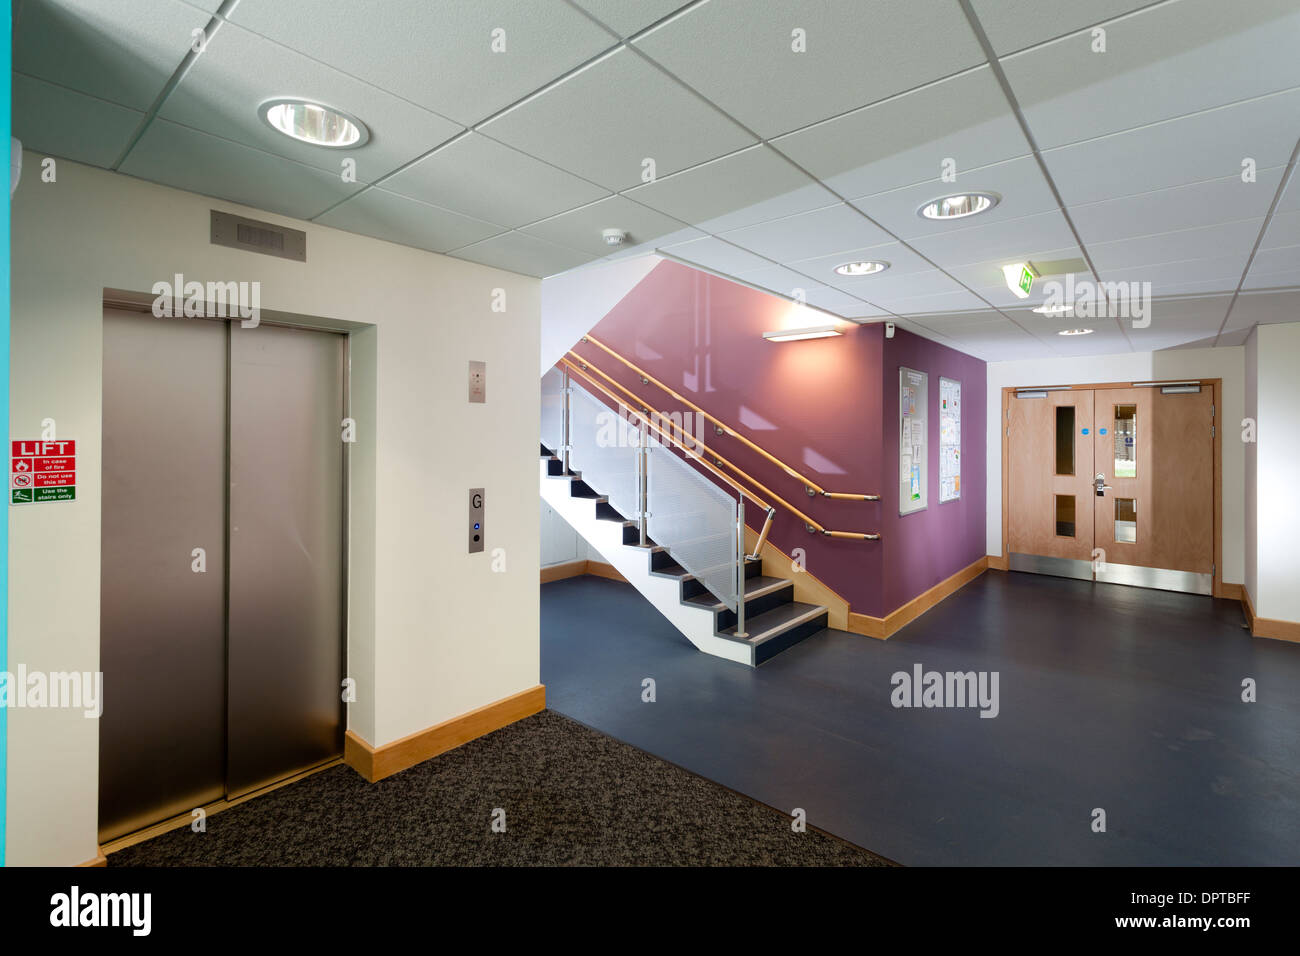 Modern office lift and stairs corridor. - Stock Image